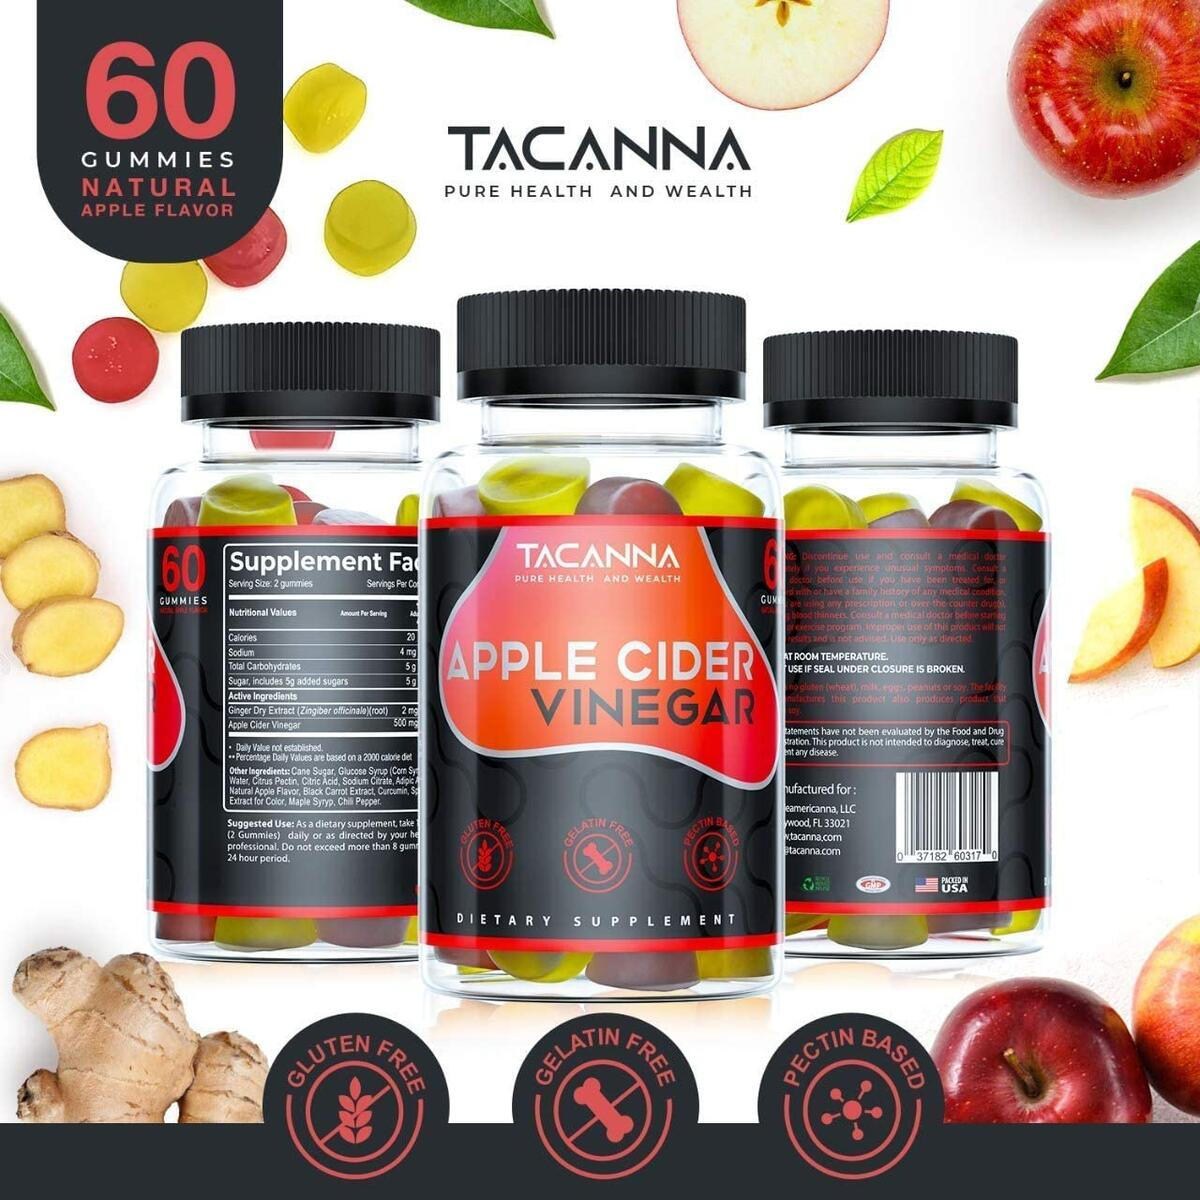 Tacanna Apple Cider Vinegar Gummies All-Natural - [2 Pack] 120 Count, Gluten-Free, Non-GMO - Immunity , Weight , Gentle Colon Cleanse Women, Men, and Kids